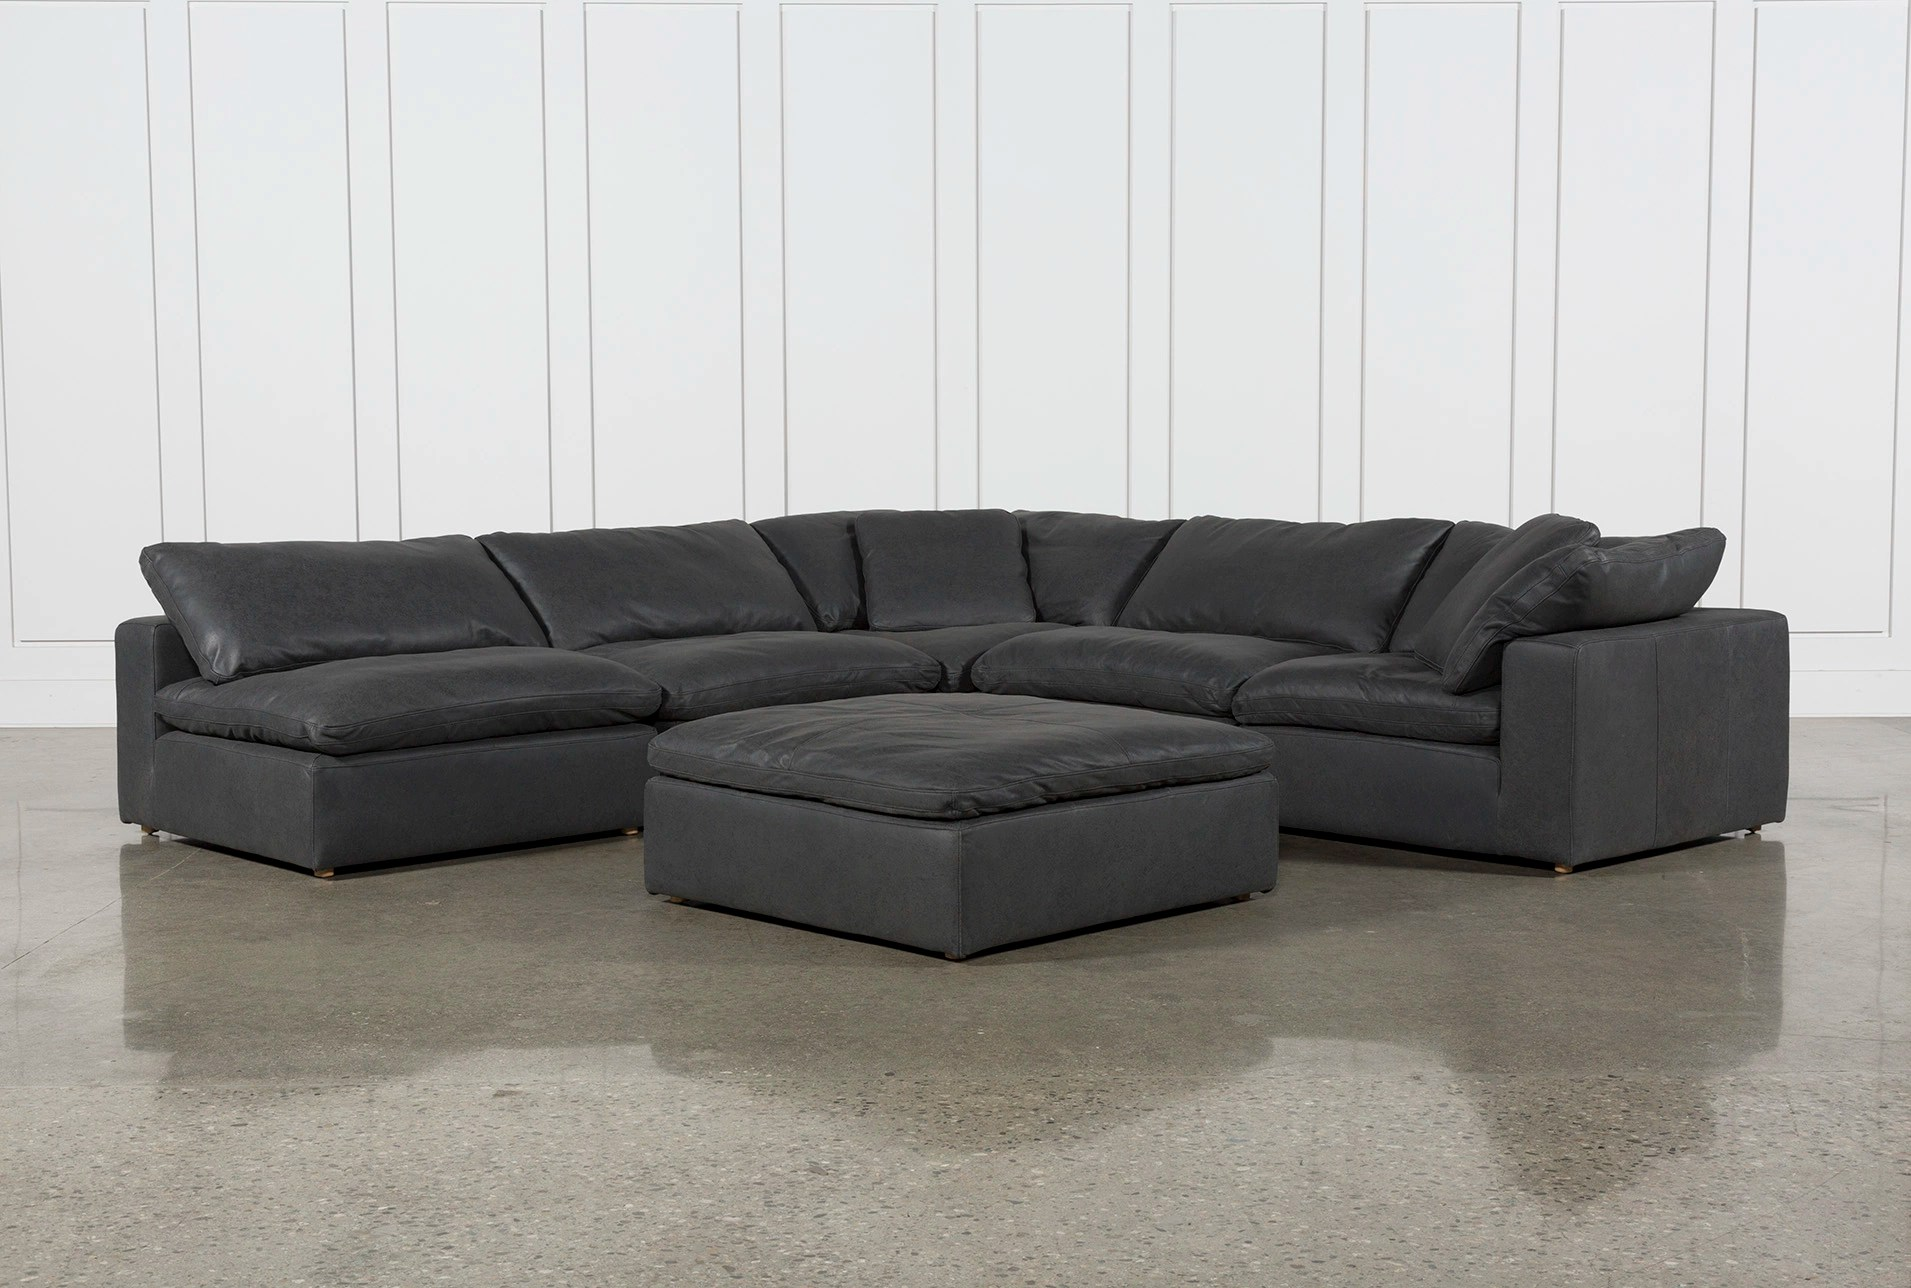 Cool Comfy Chairs Hidden Cove Grey Leather 6 Piece Sectional With 3 Armless Chairs